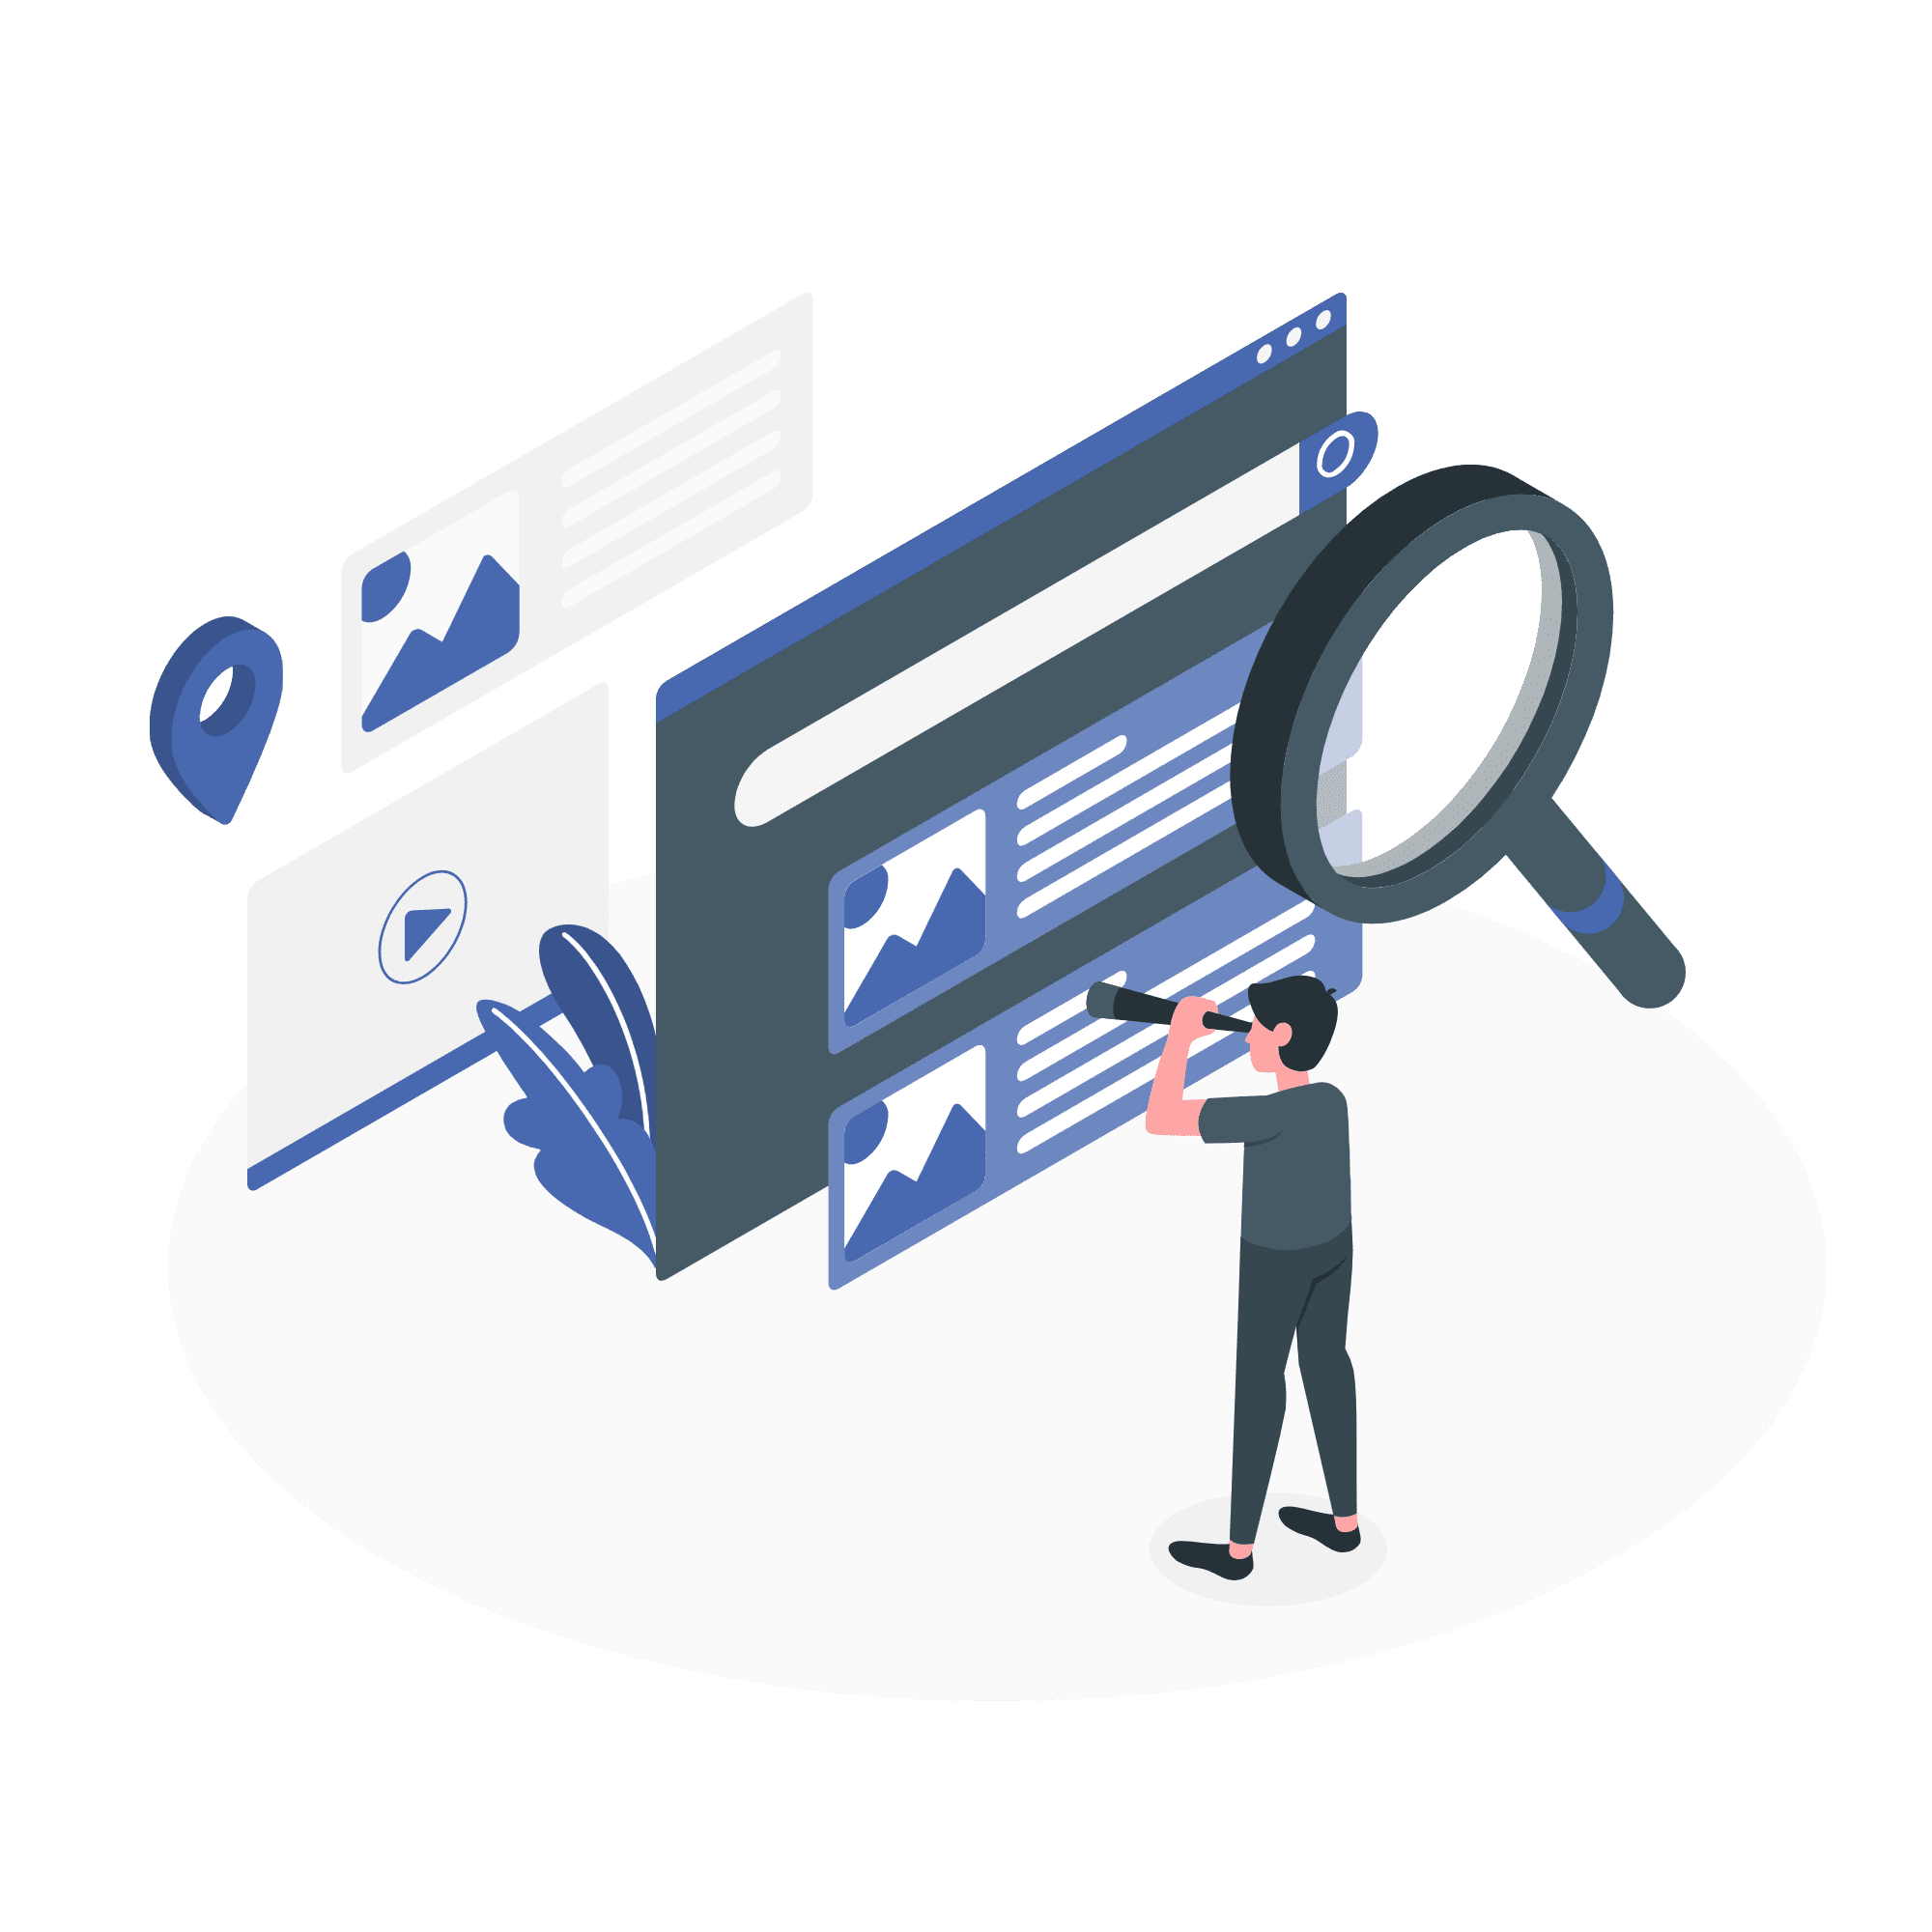 Creative review concept vector illustration